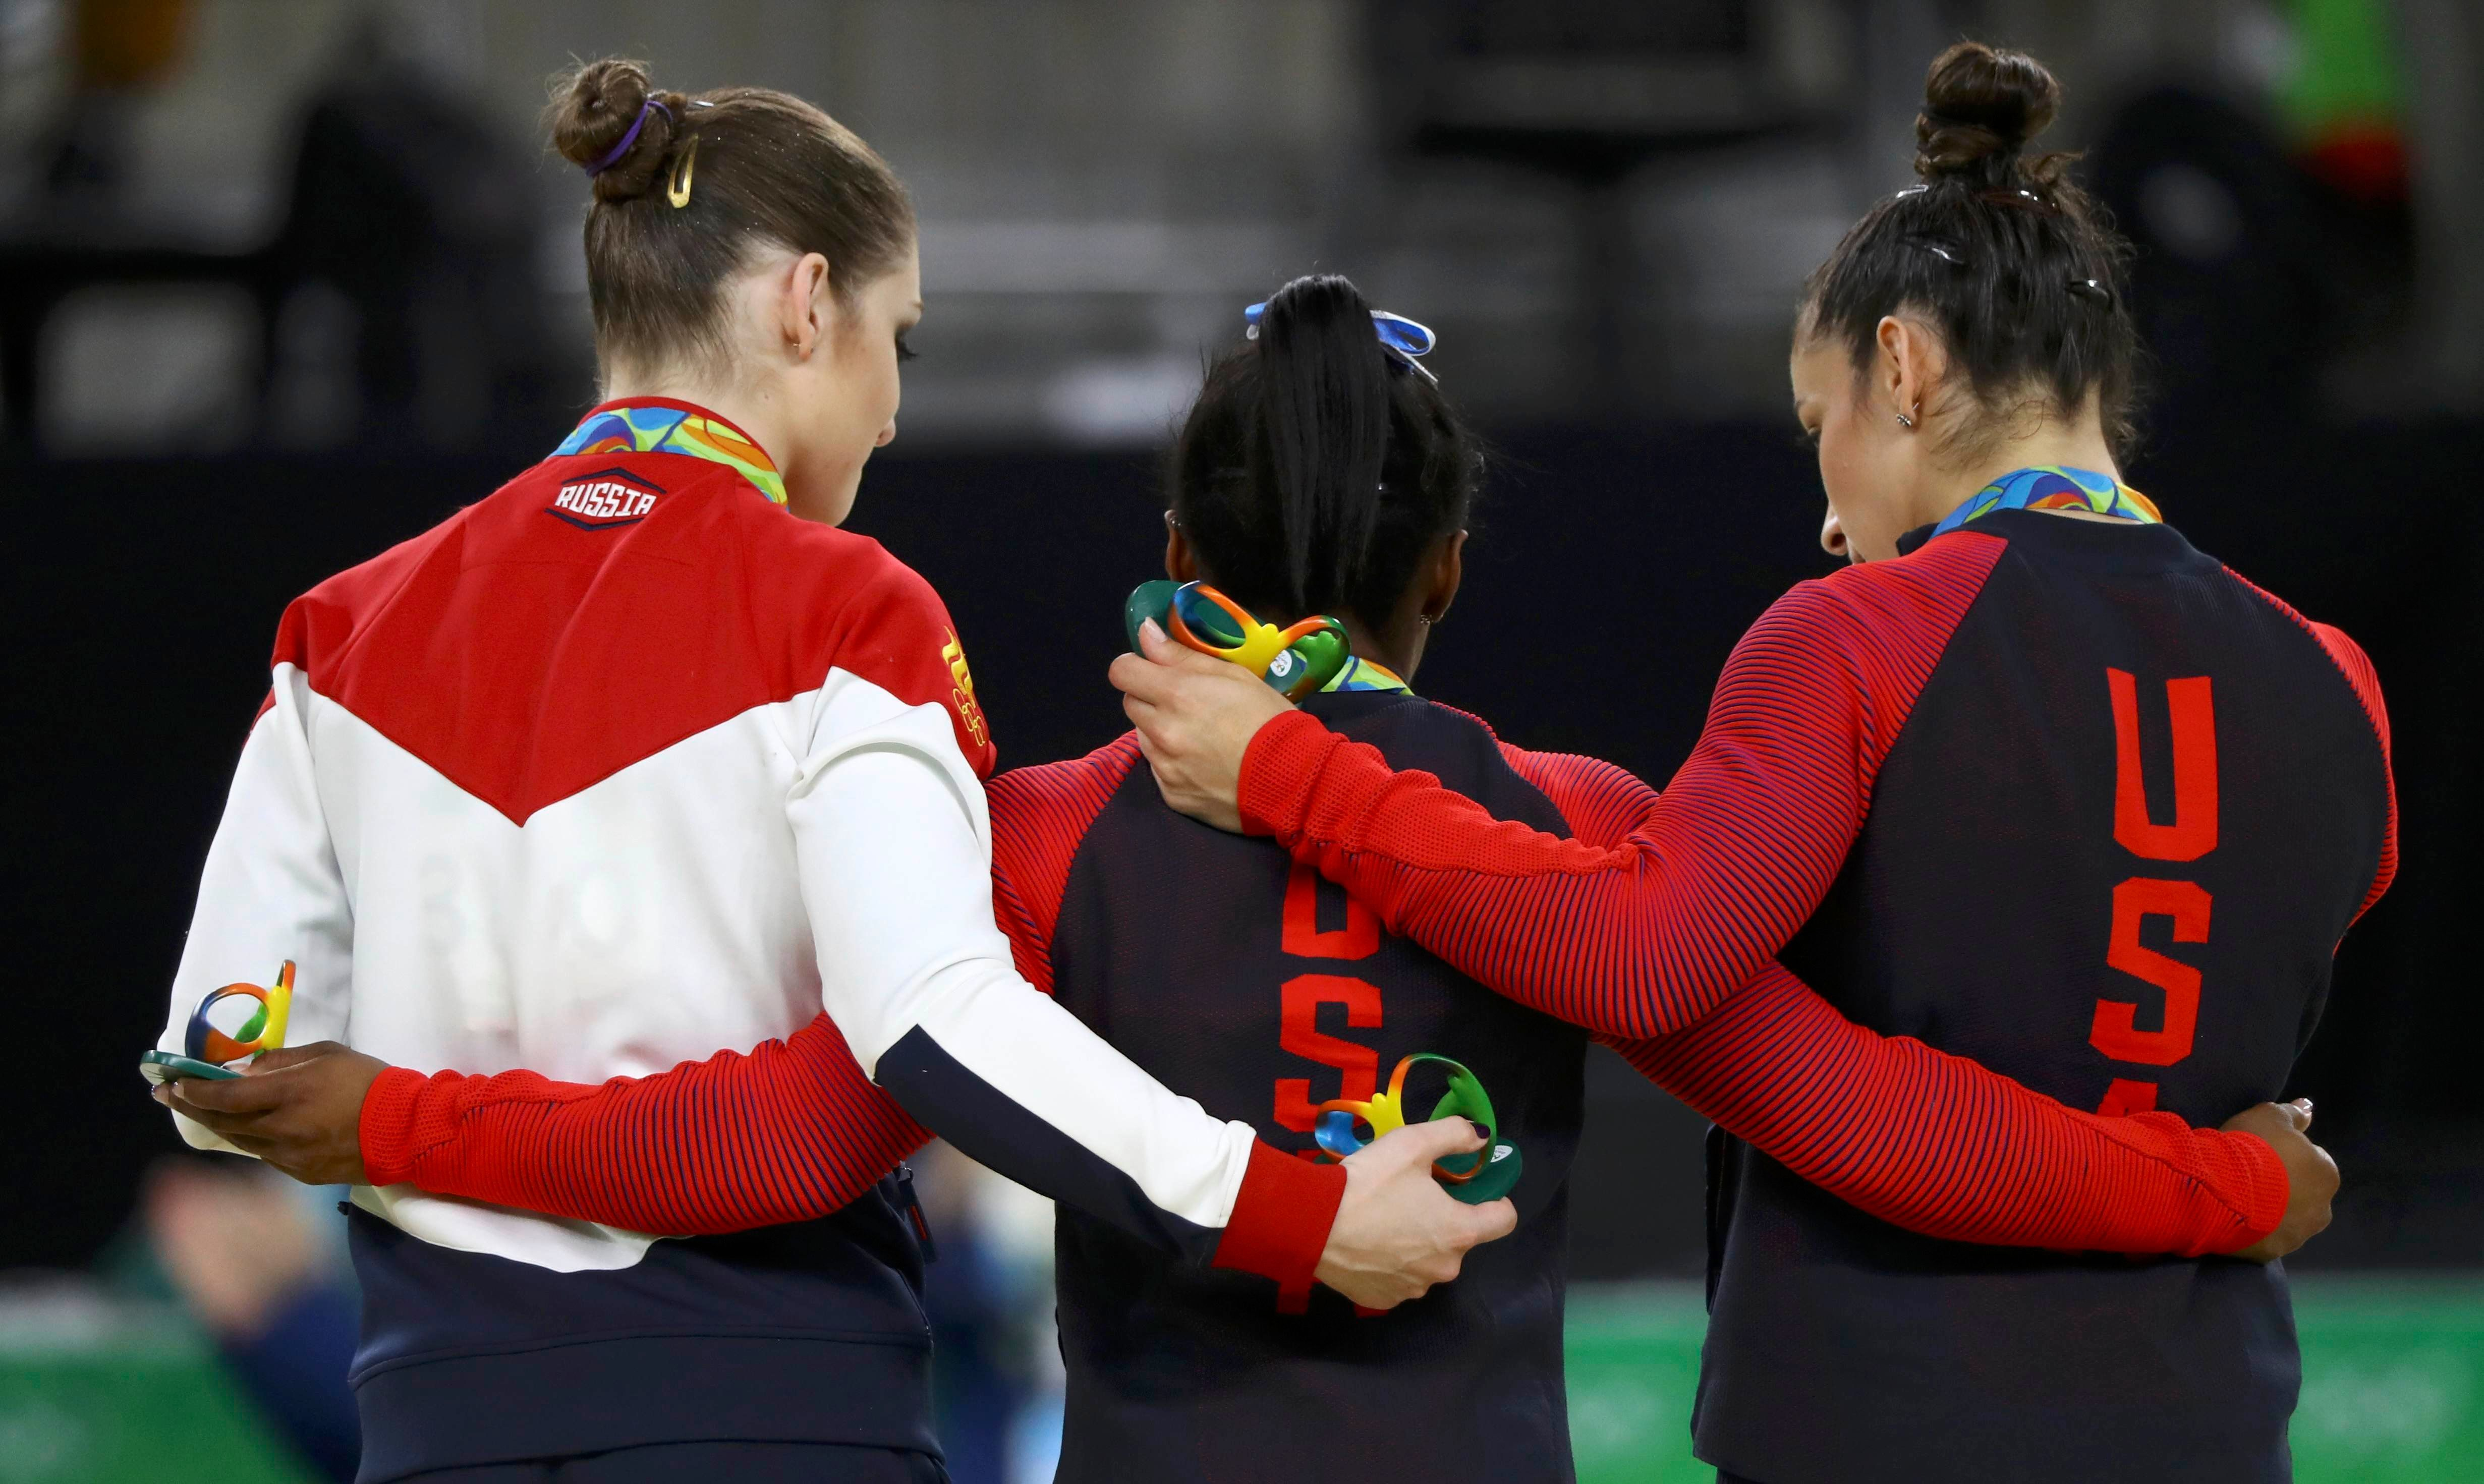 U.S. Olympic Committee Appoints First Female CEO Months After Nassar